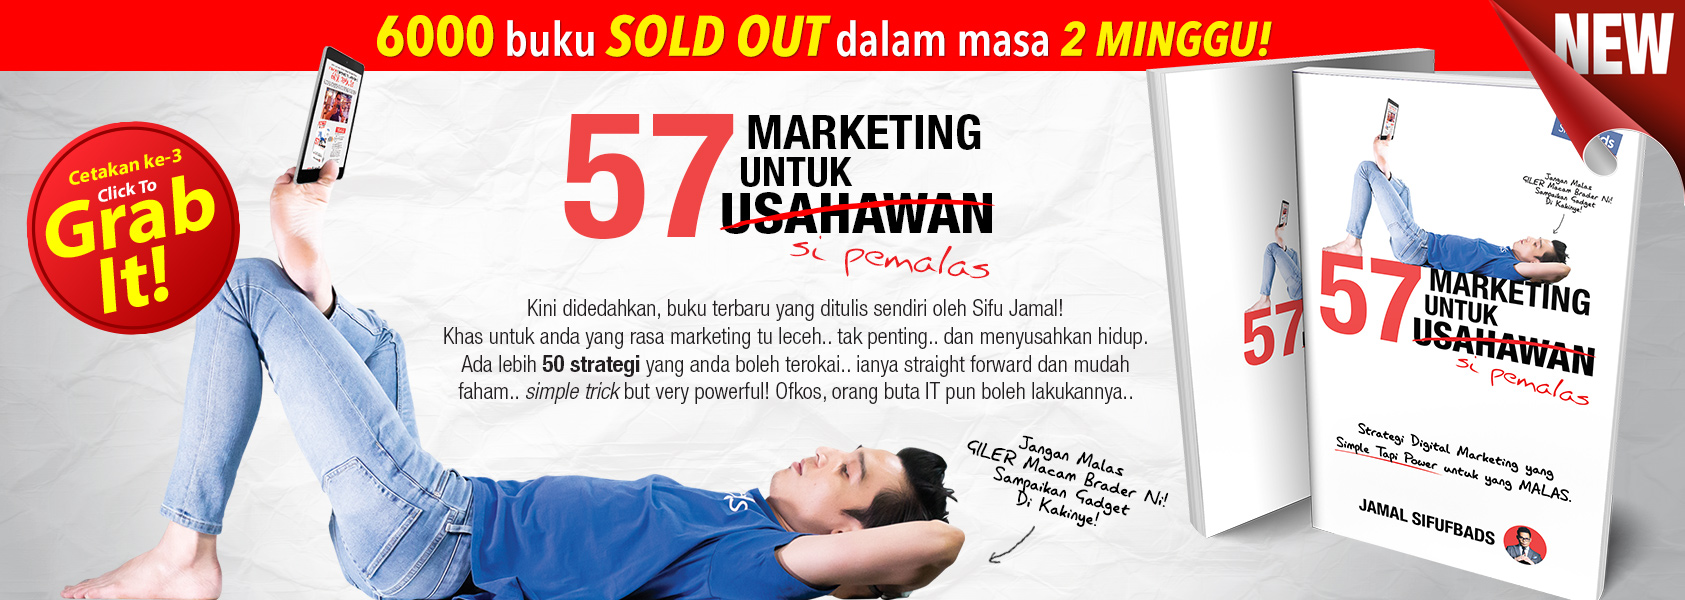 Buku Malas Marketing